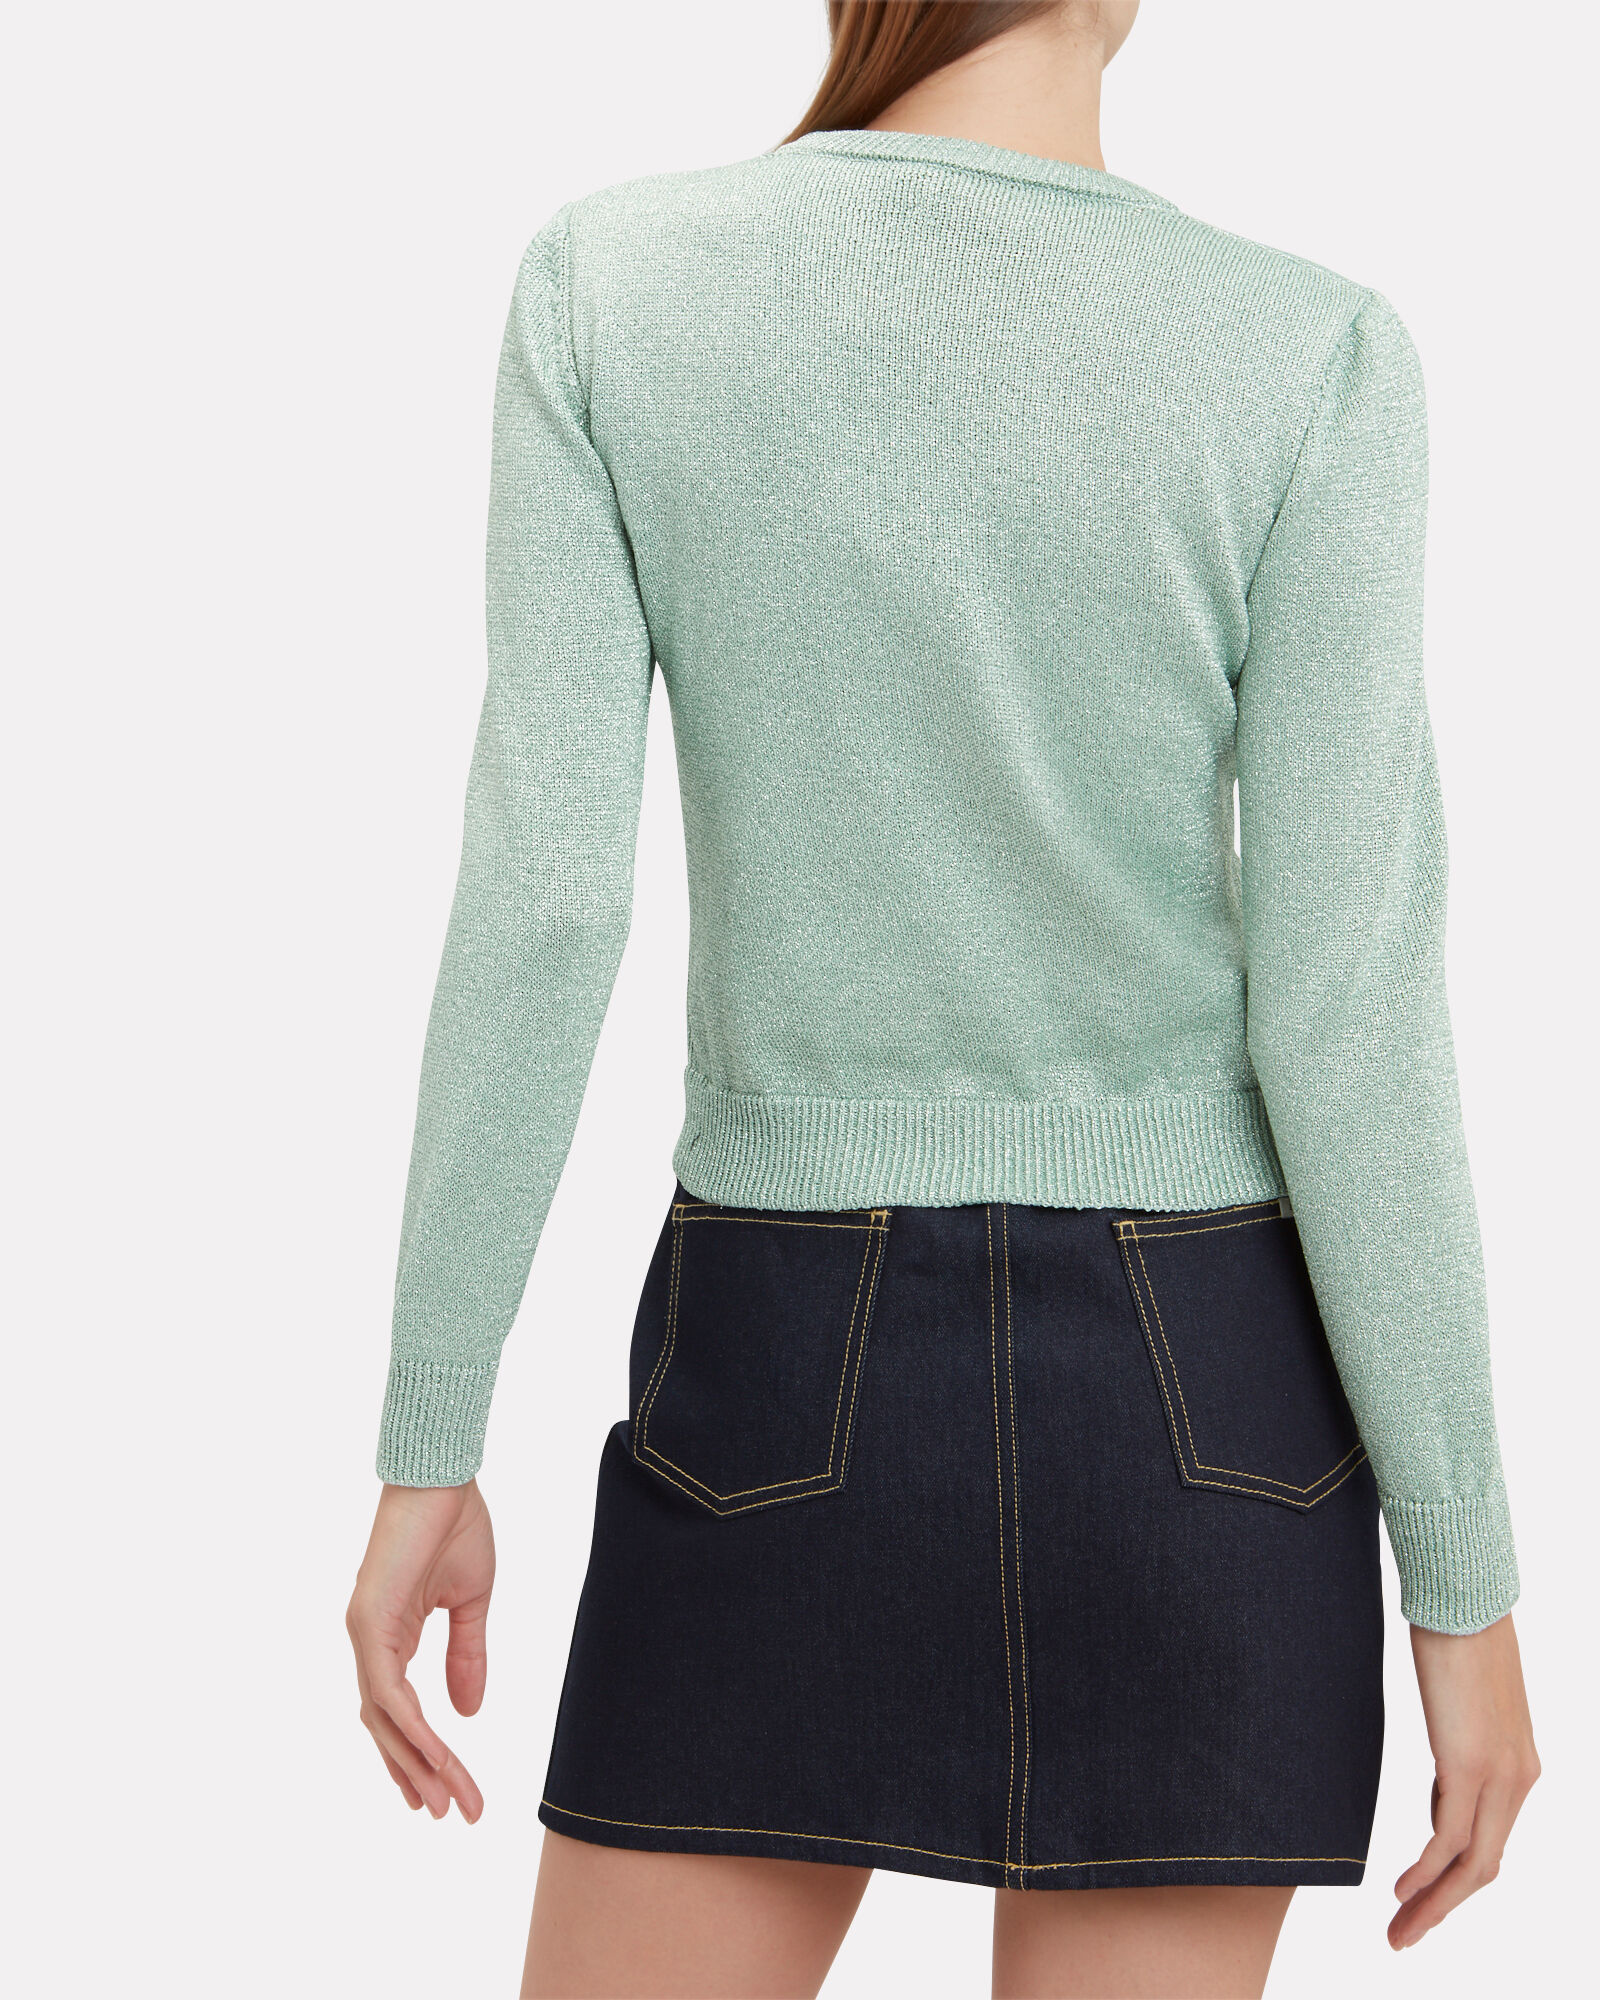 Tuesday Sweater, MINT GREEN, hi-res